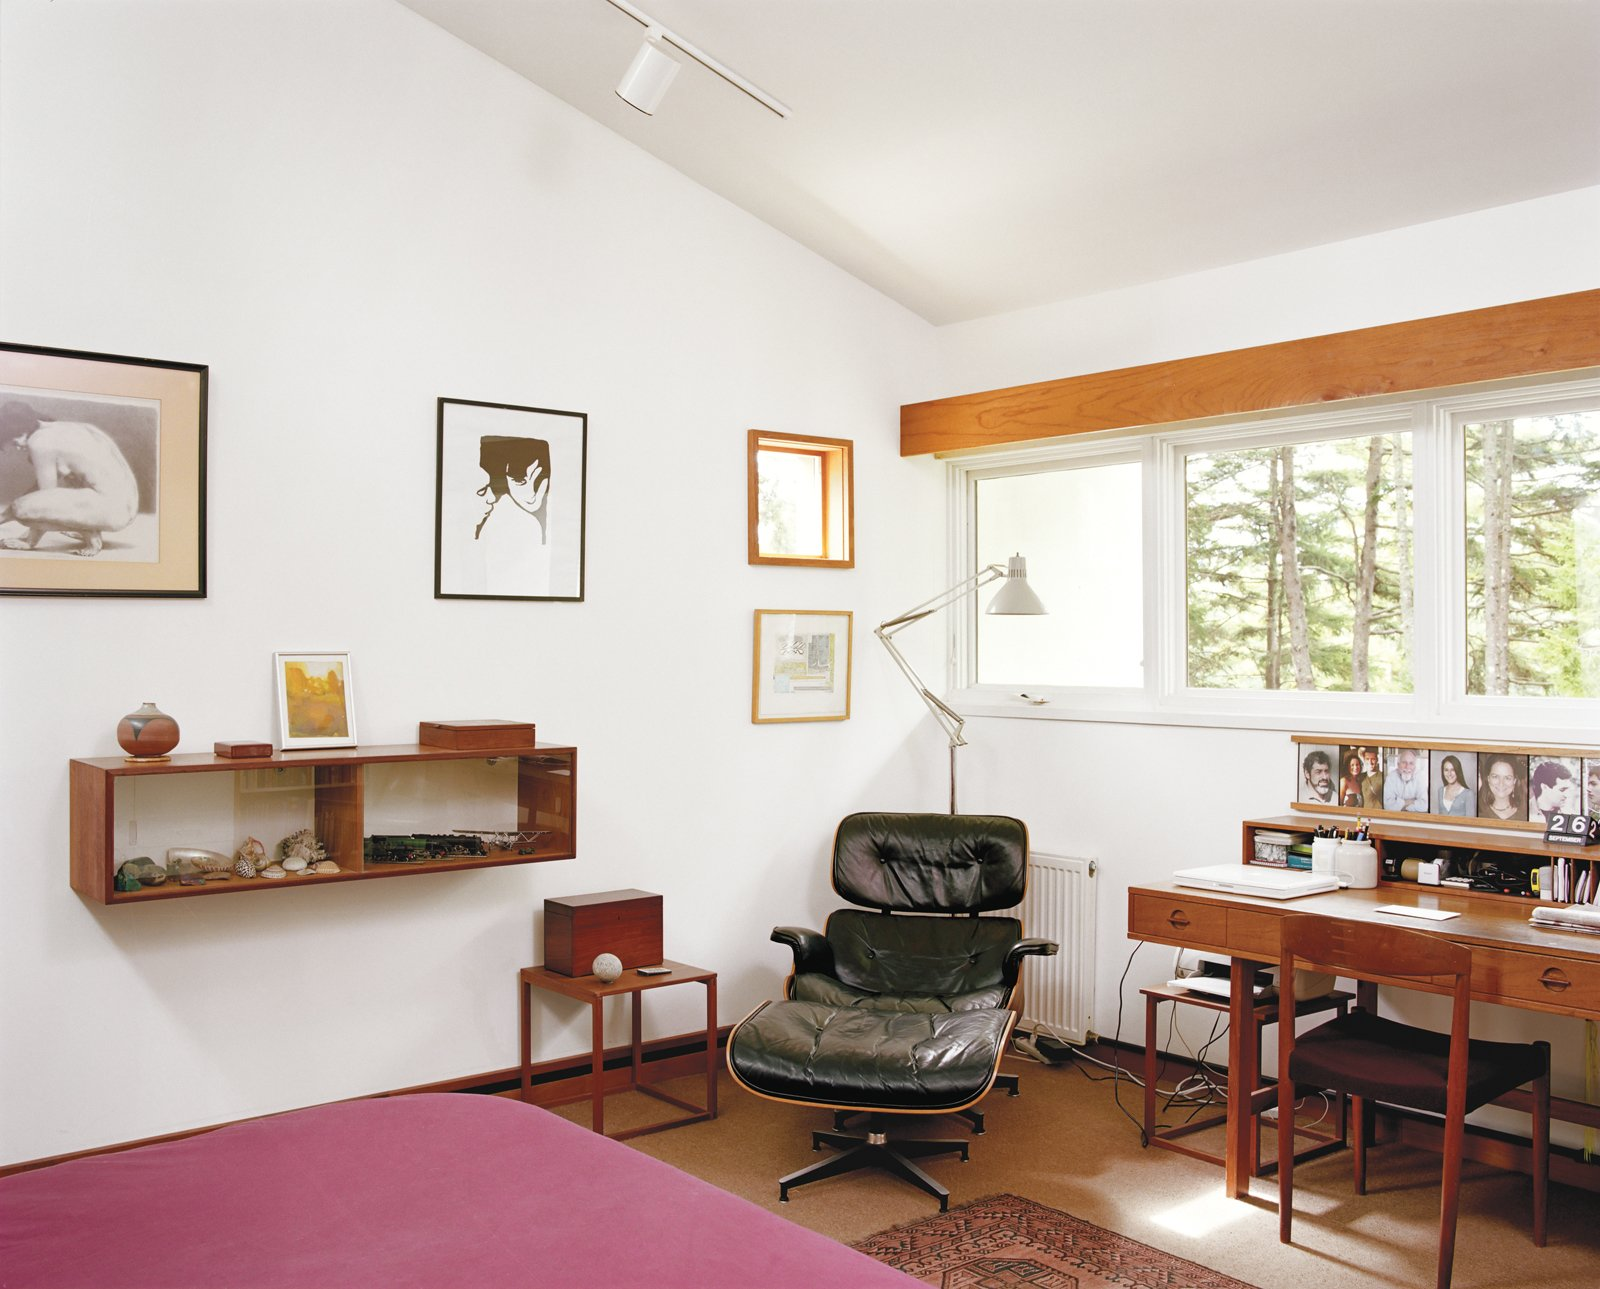 Bedroom, Chair, Bed, Rug Floor, and Track Lighting Classic mid-century furniture like the Eames lounge chair in Cohen's bedroom populate the home, a nod to his long life in architecture.  Photo 9 of 15 in The Right Track